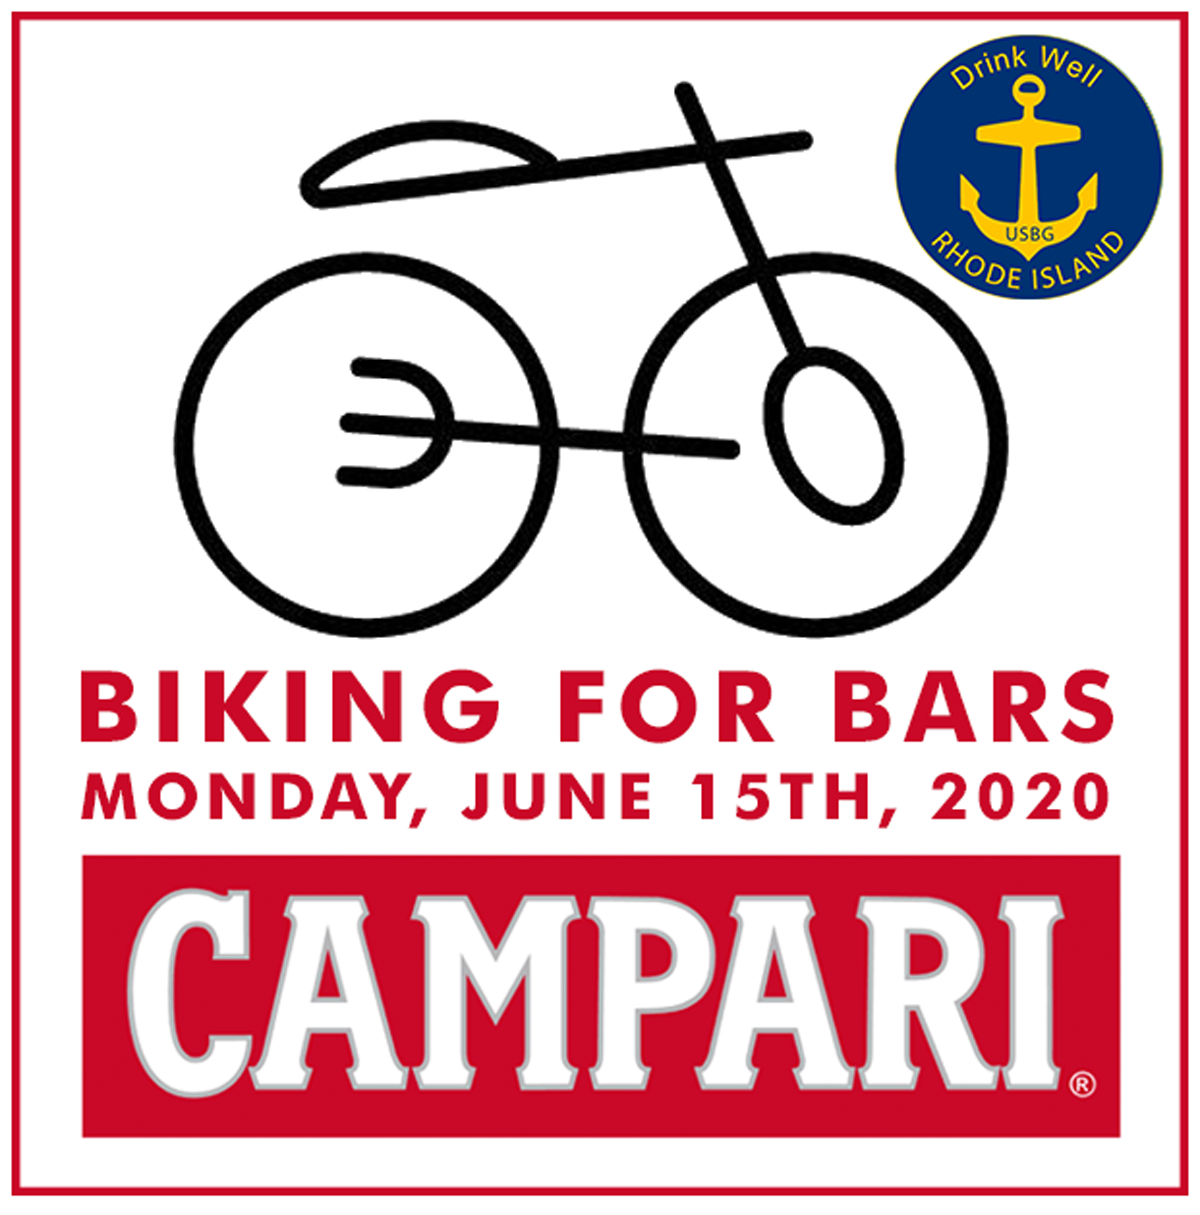 June 15, 2020: Biking for Bars Charitable Bike Ride